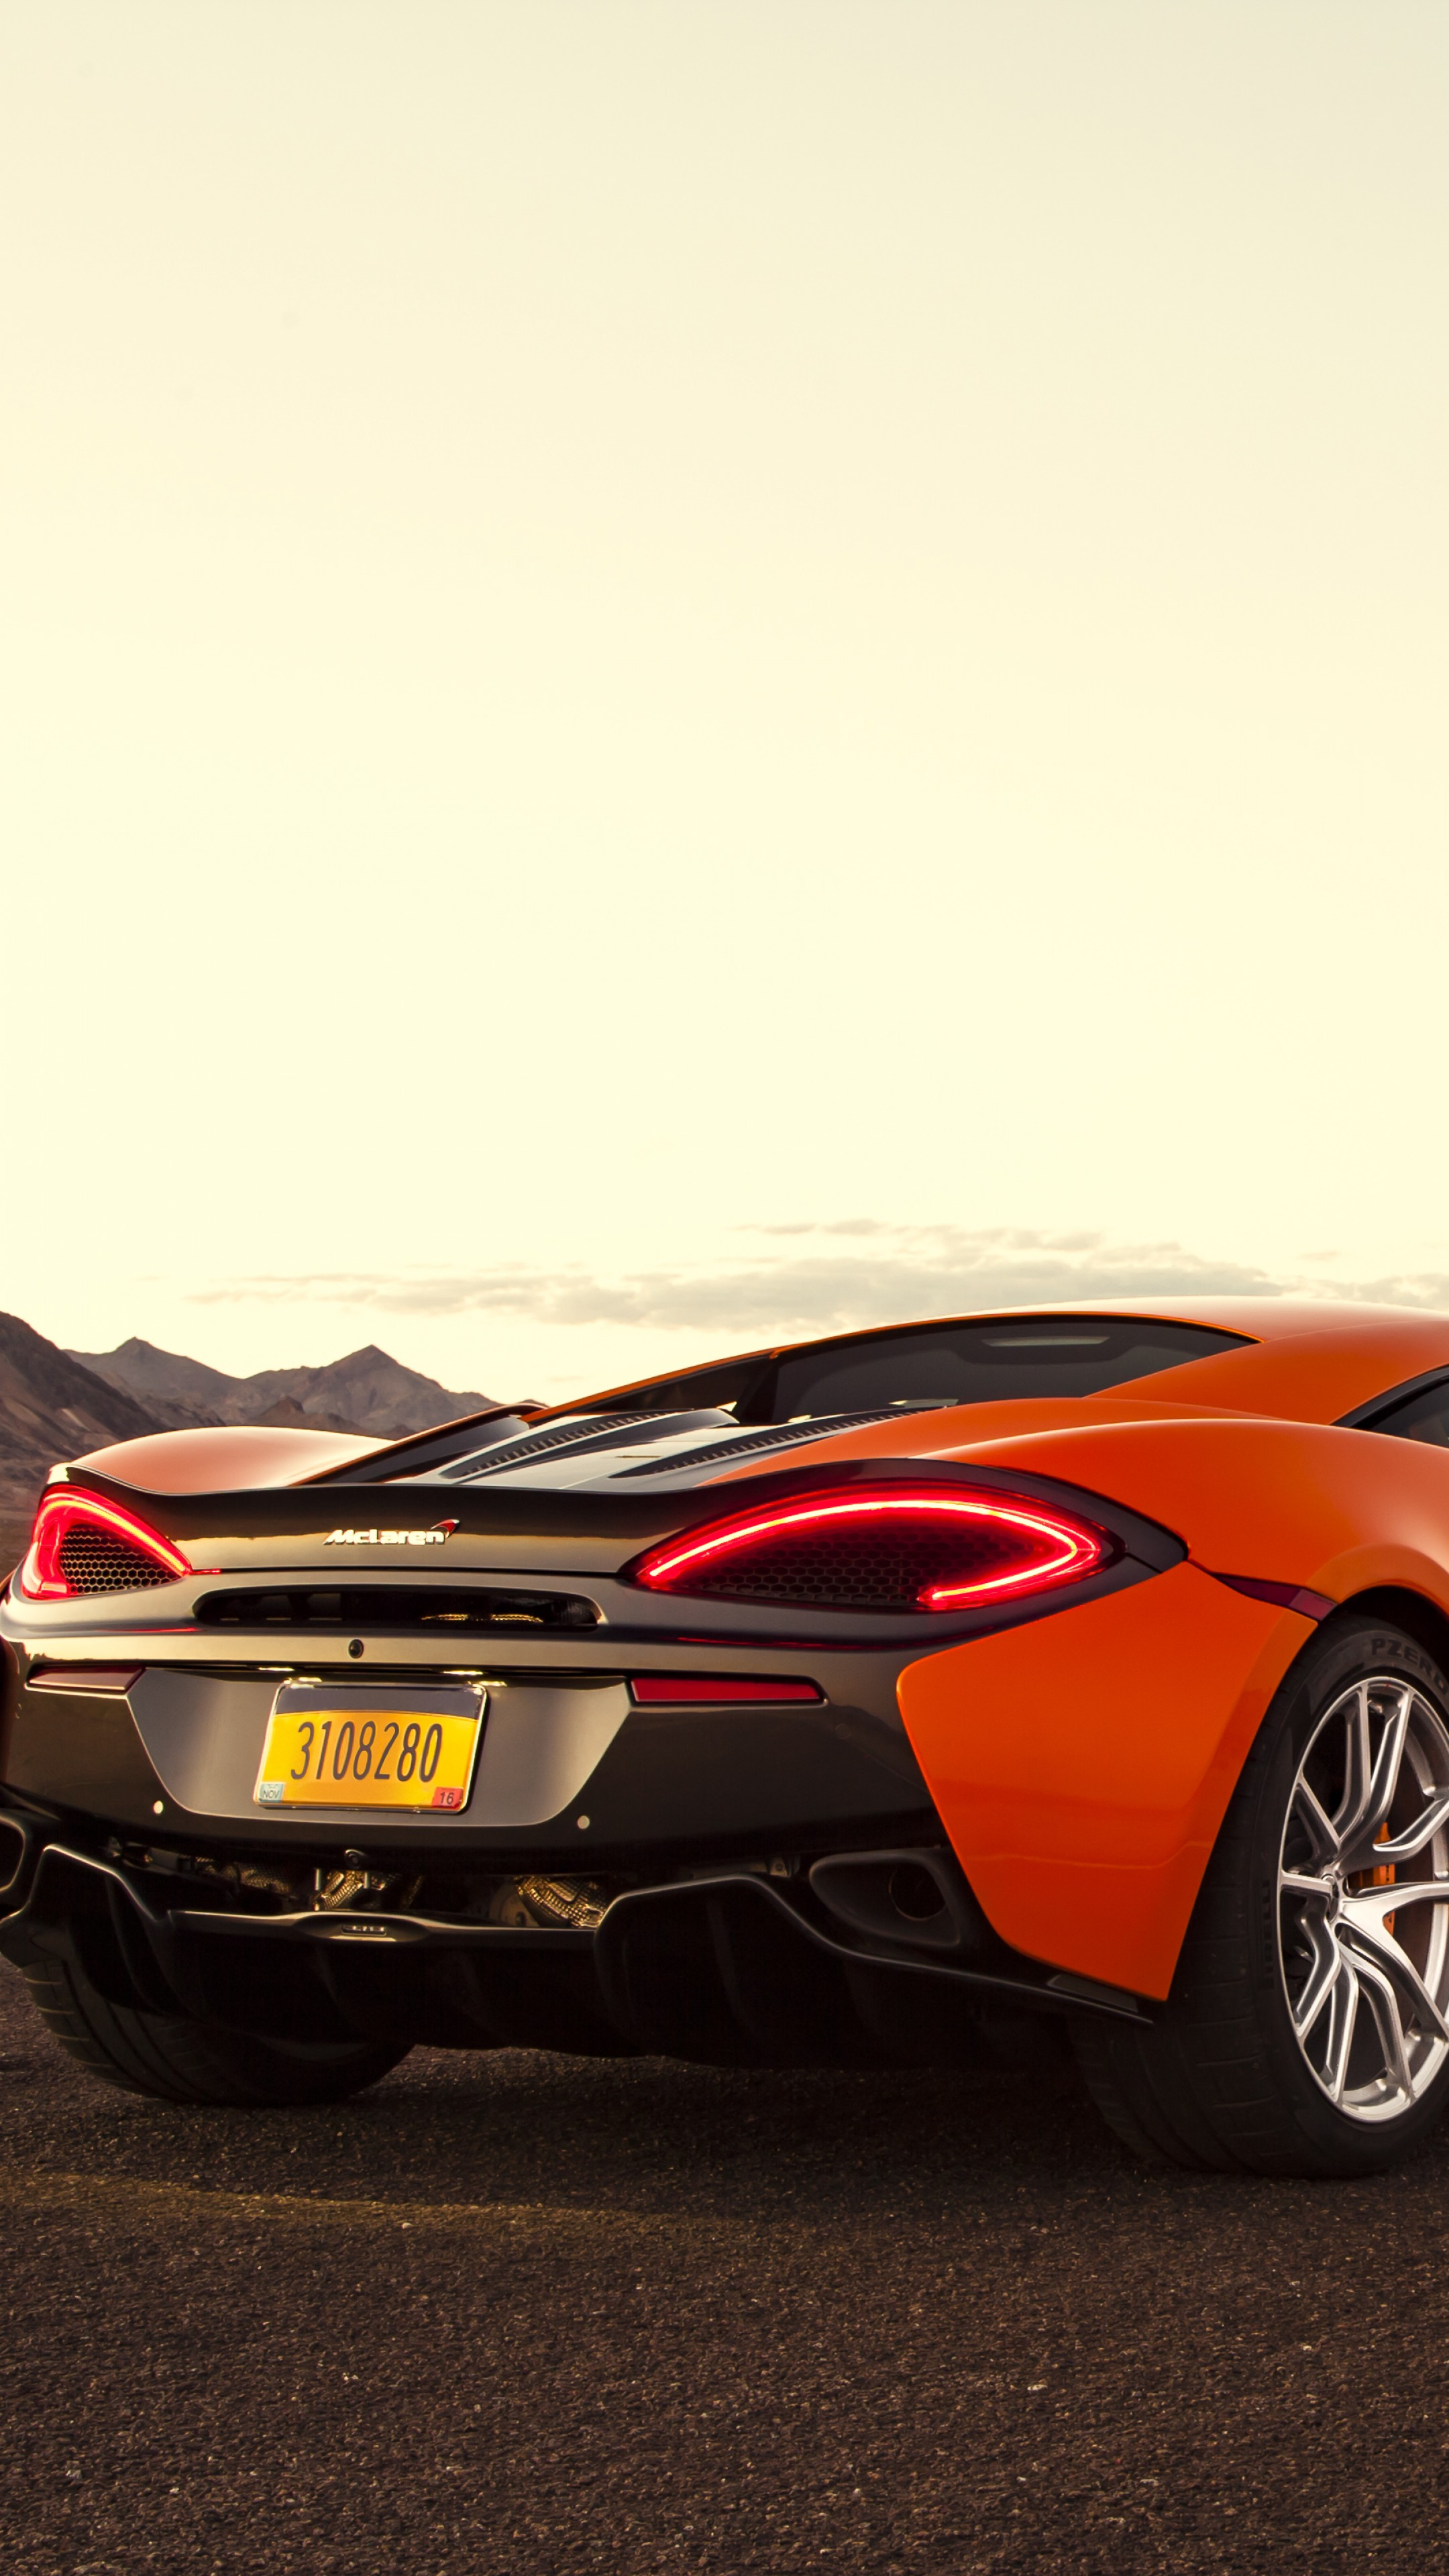 mclaren 570s mso 2160x3840 sport series orange 7467